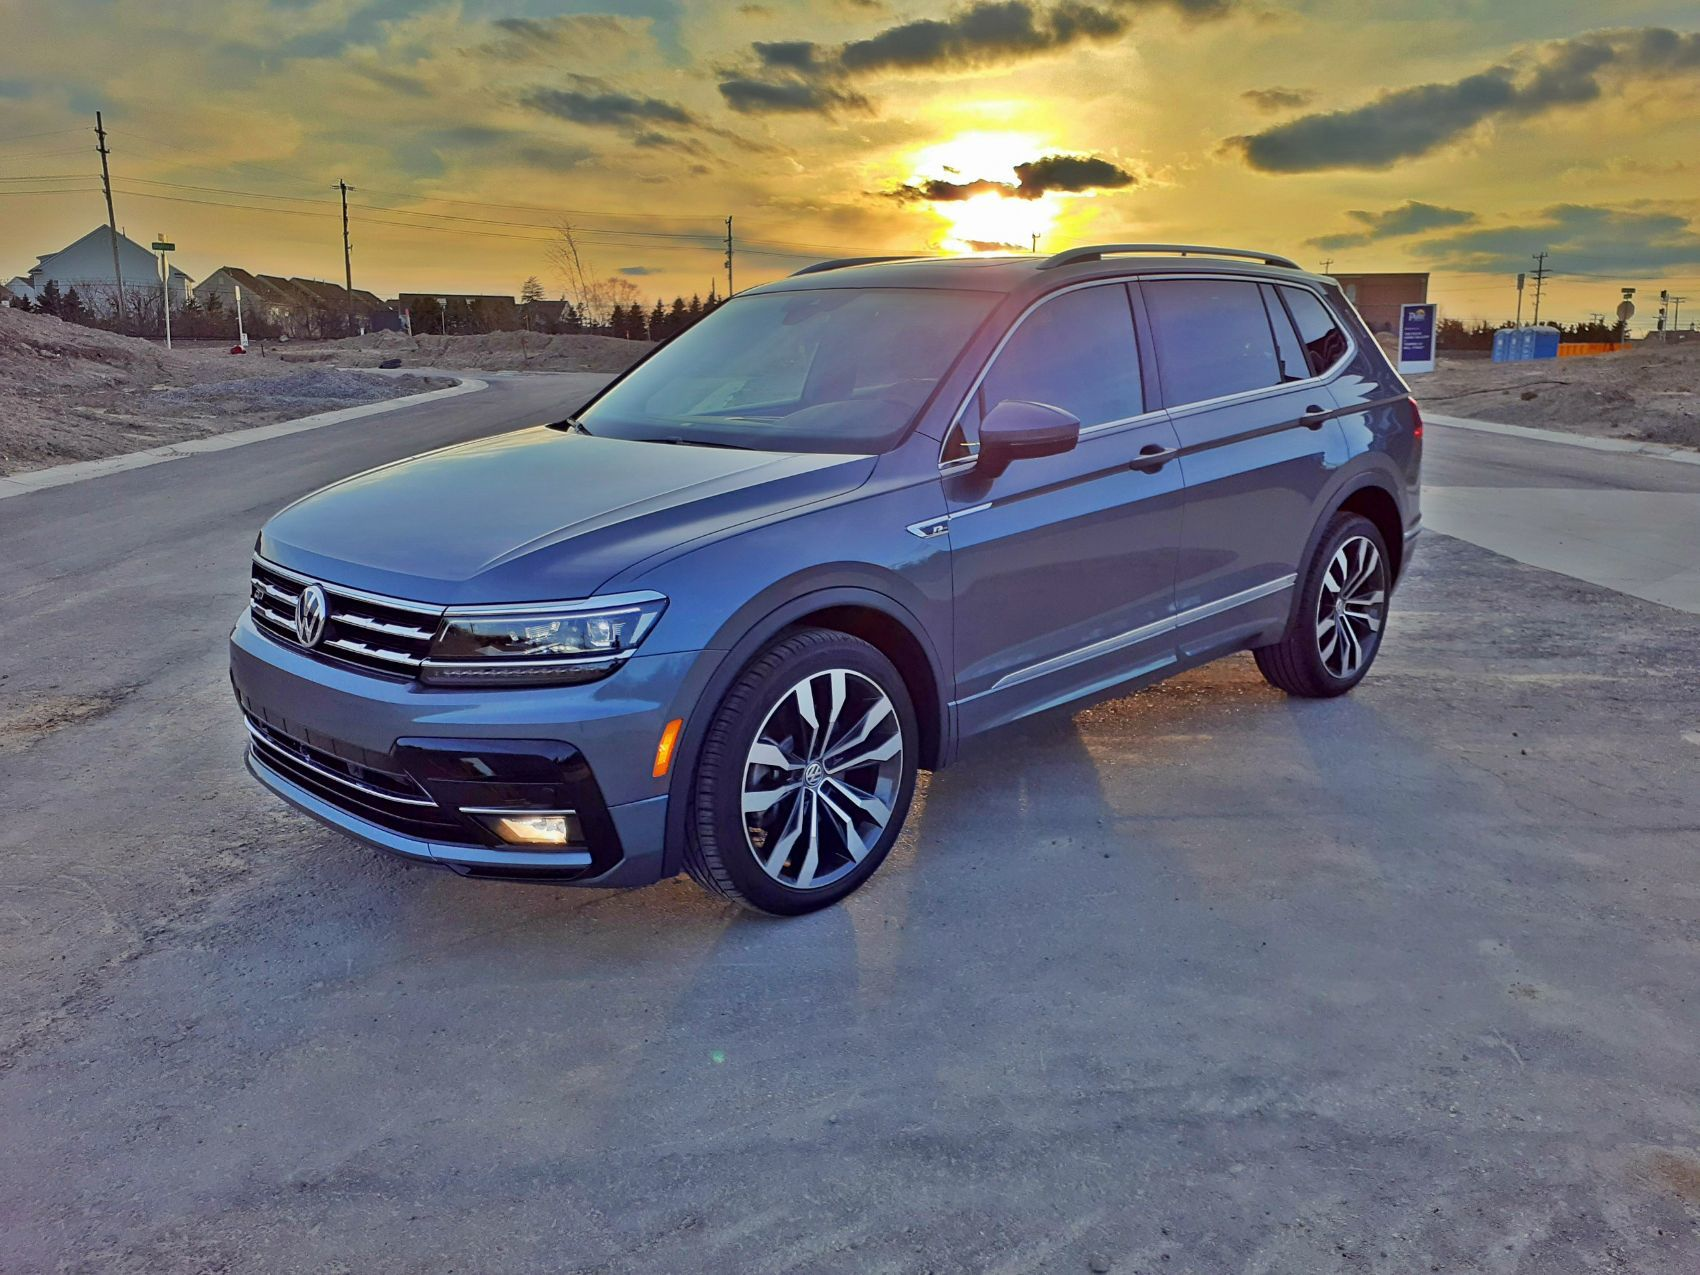 2020 VW Tiguan Review: Not Our Cup of Tea & Here's Why